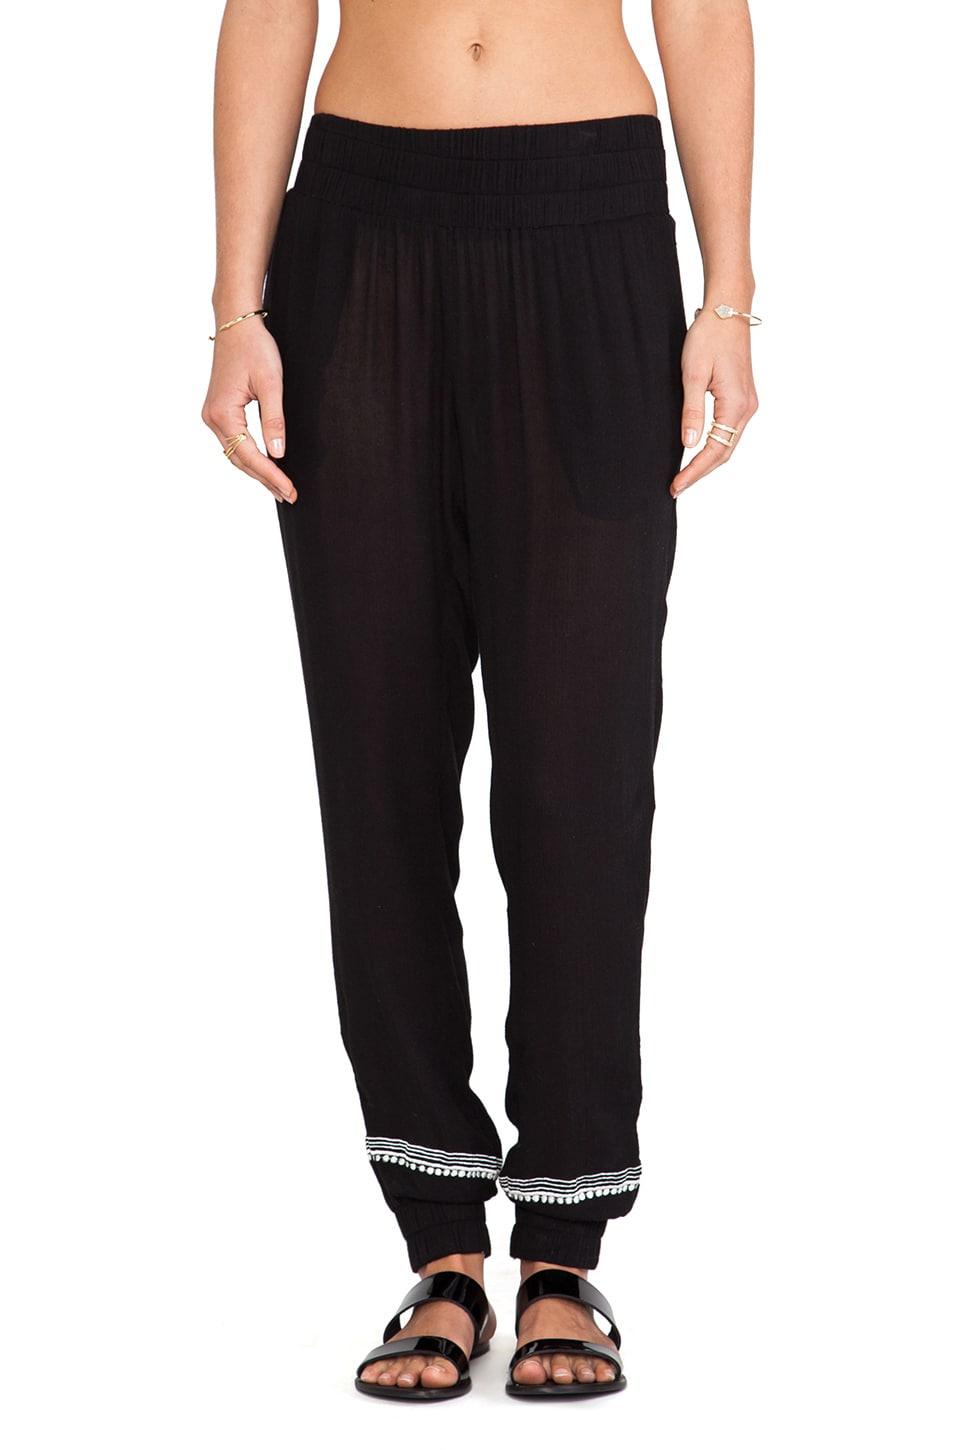 Tularosa Nova Pant in Black